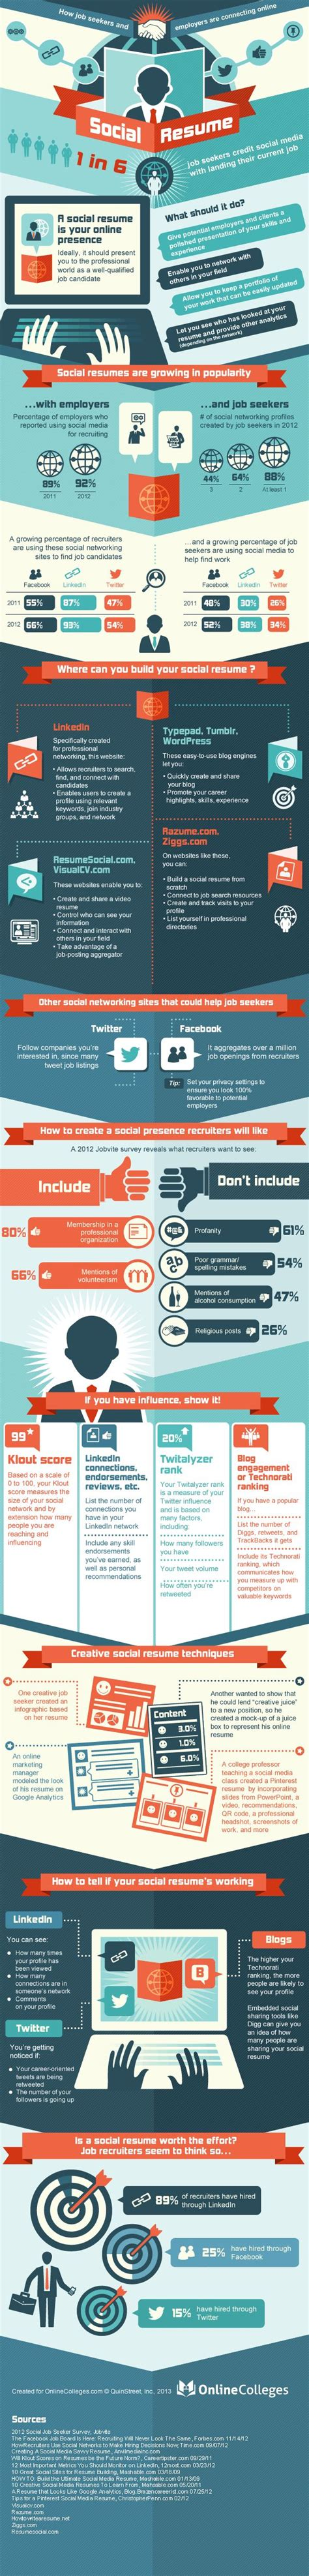 31 Best Images About Selling Your Skills On Pinterest